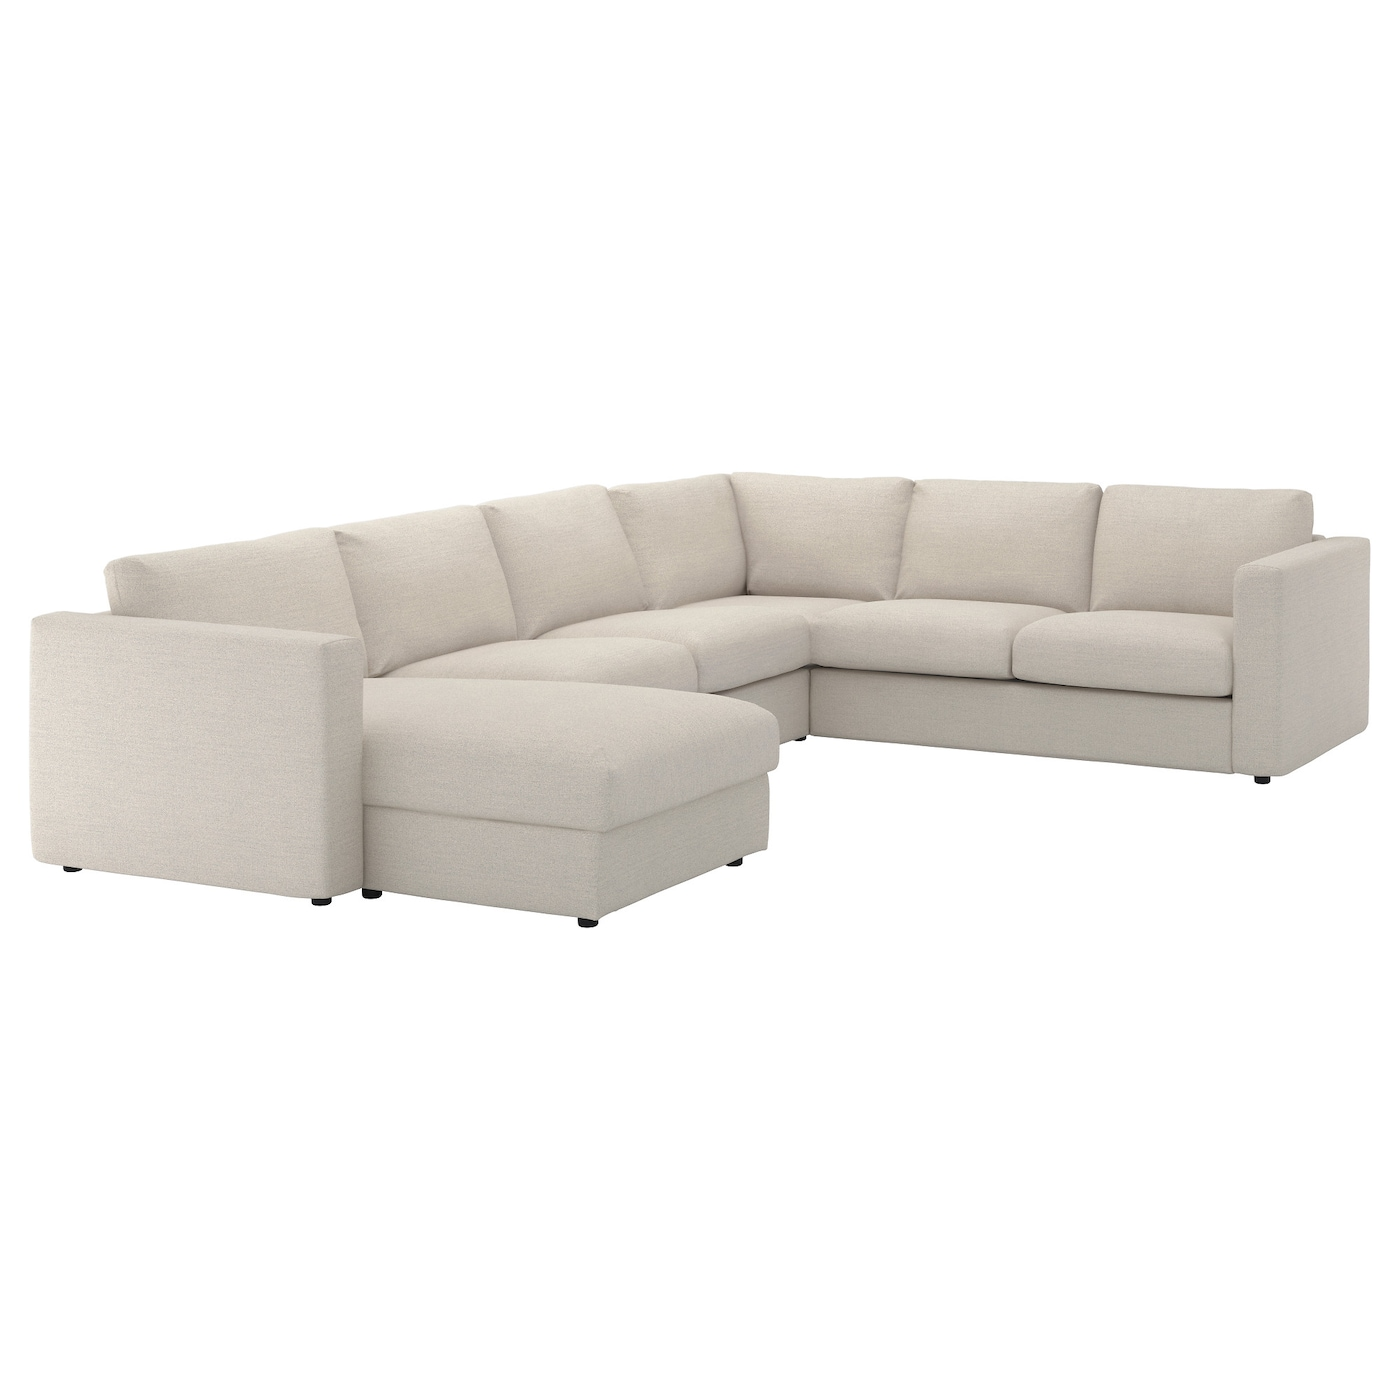 Vimle corner sofa 5 seat with chaise longue gunnared for Chaise long sofa